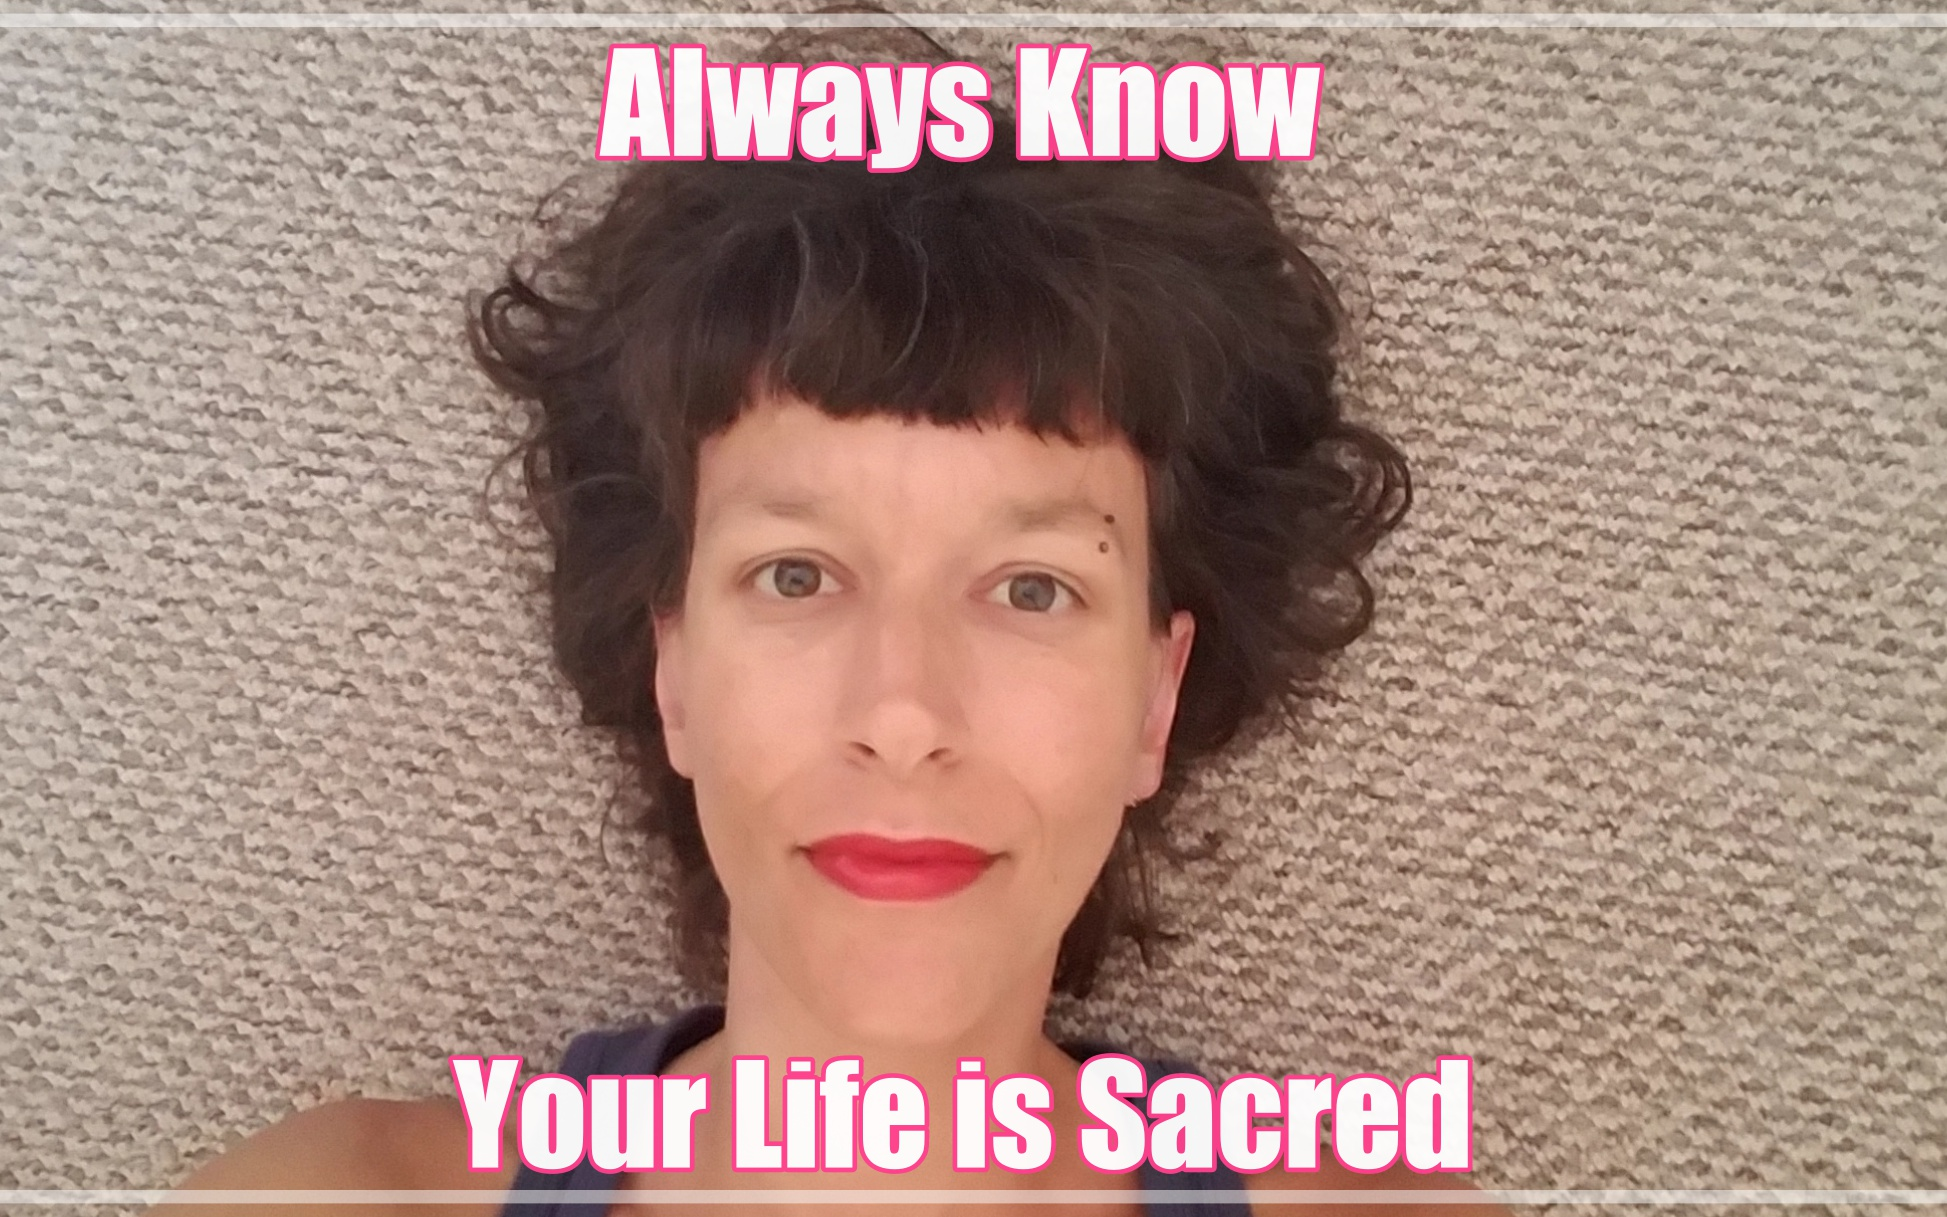 ALWAYS KNOW. YOUR LIFE IS SACRED.